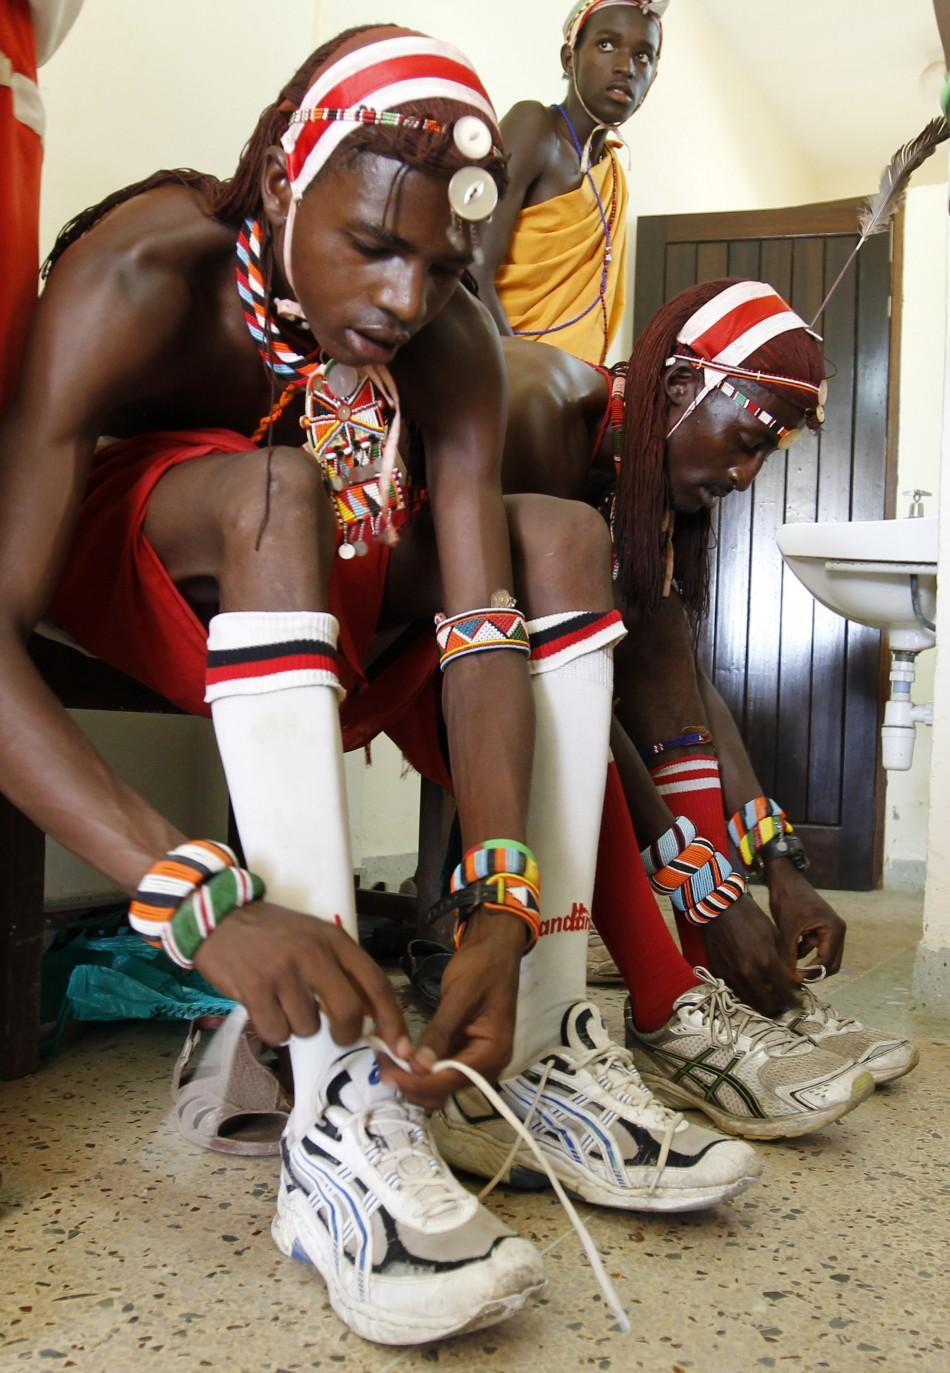 Members of the Maasai Cricket Warriors prepare for their friendly match against the Jafferys team in the Kenyan coastal city of Mombasa